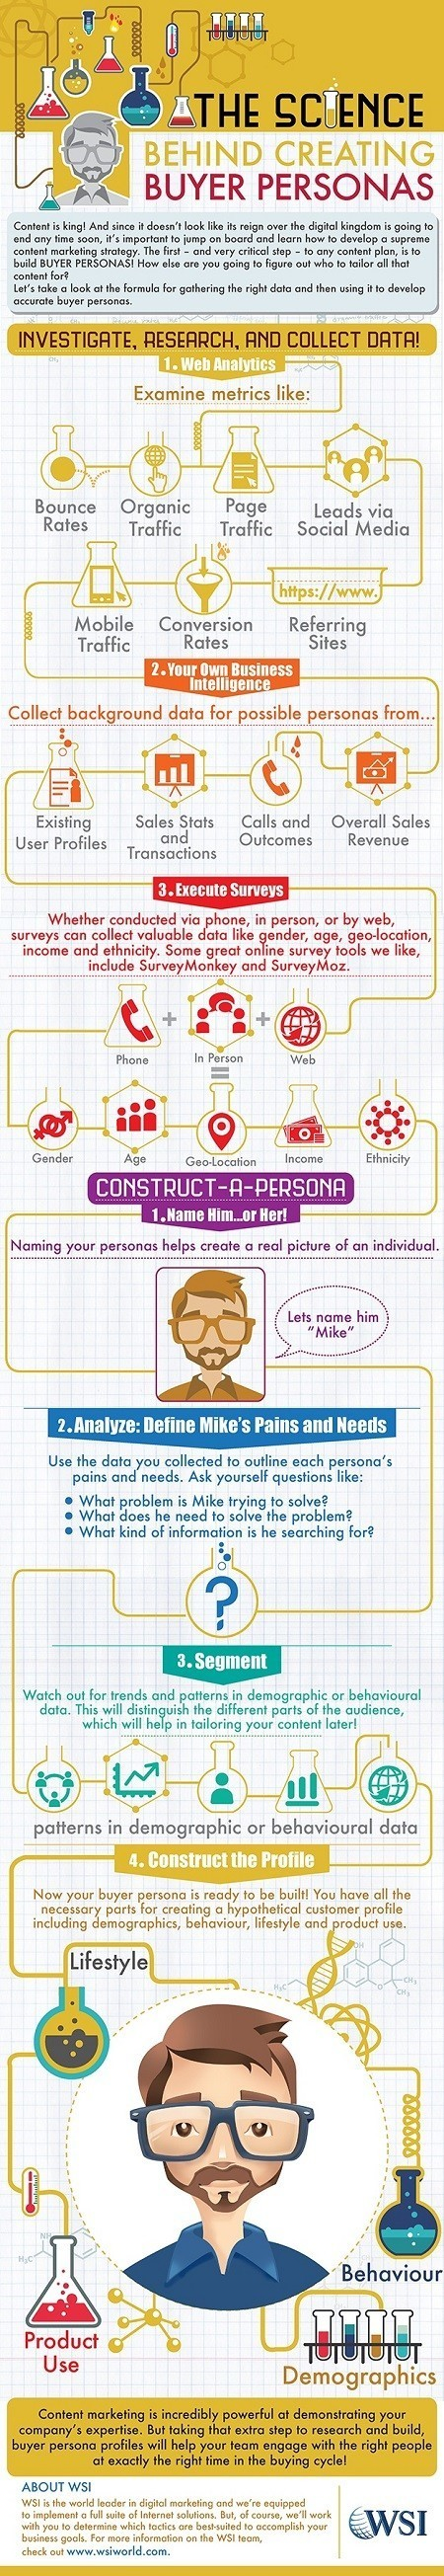 How to Create Buyer Personas #Infographic | Online tips & social media nieuws | Scoop.it